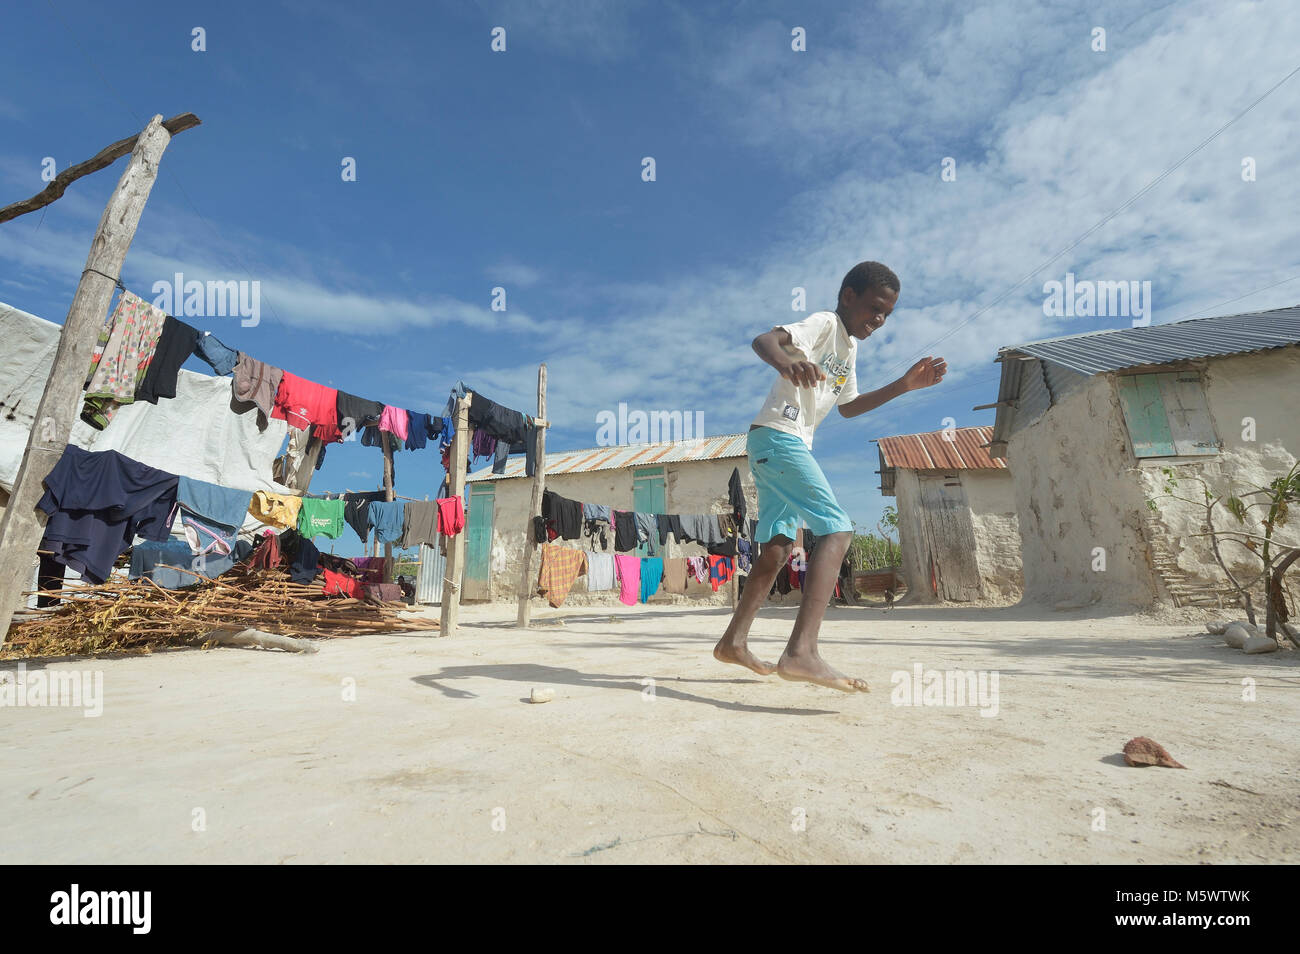 A boy plays hopscotch in the Haitian community of Ganthier. - Stock Image